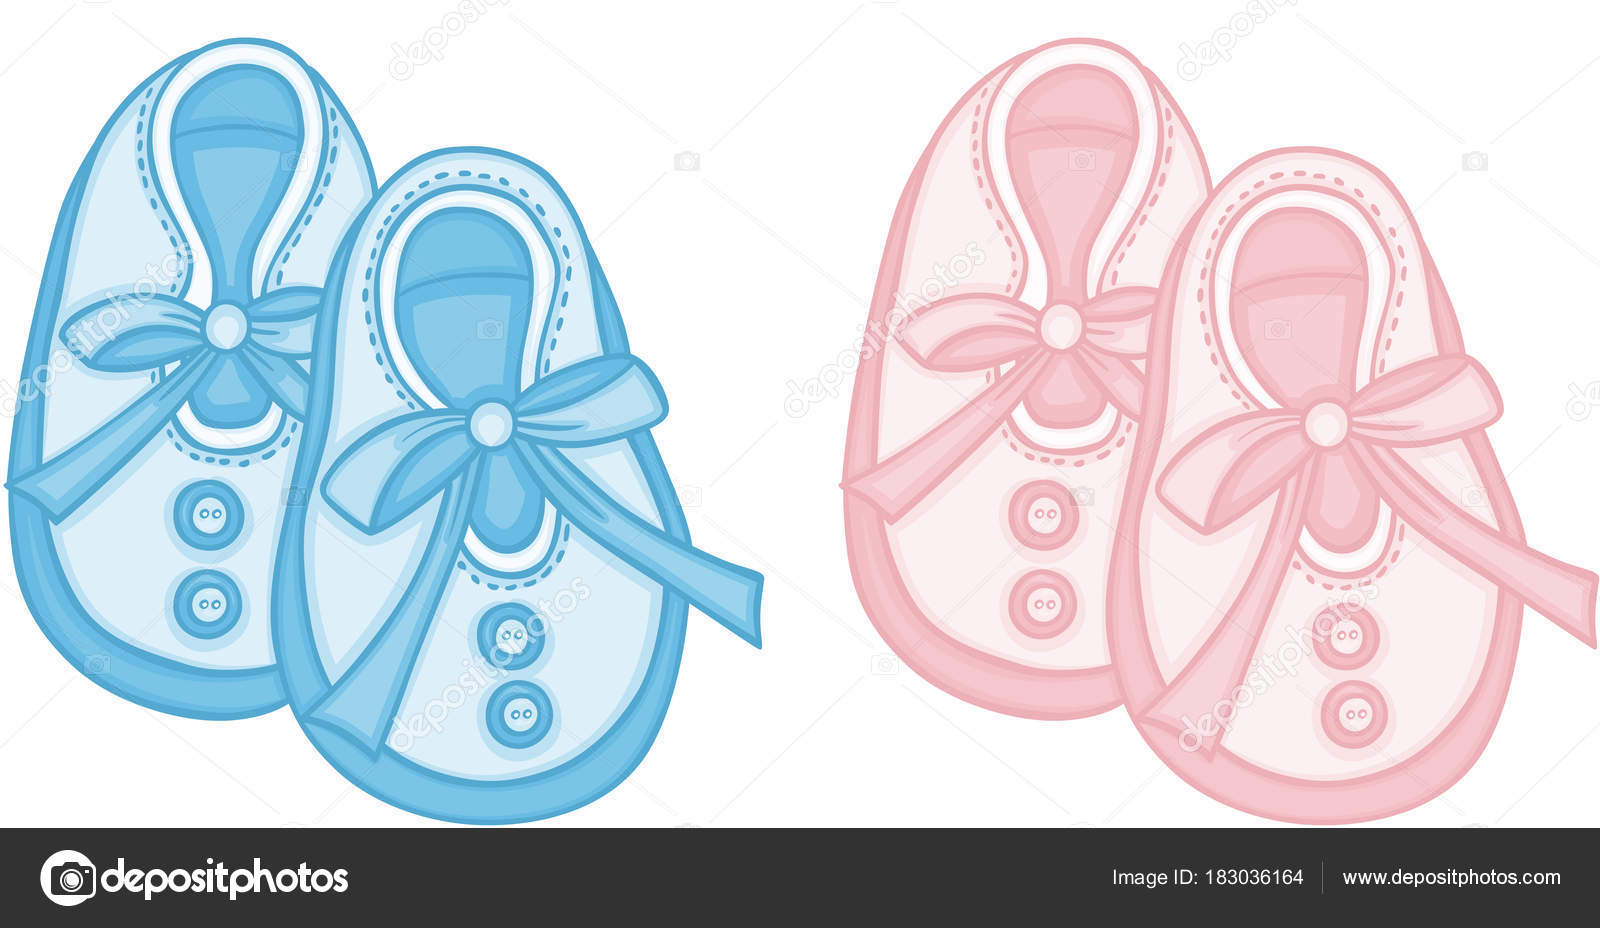 Blue Pink Baby Shoes Stock Vector C Socris79 183036164